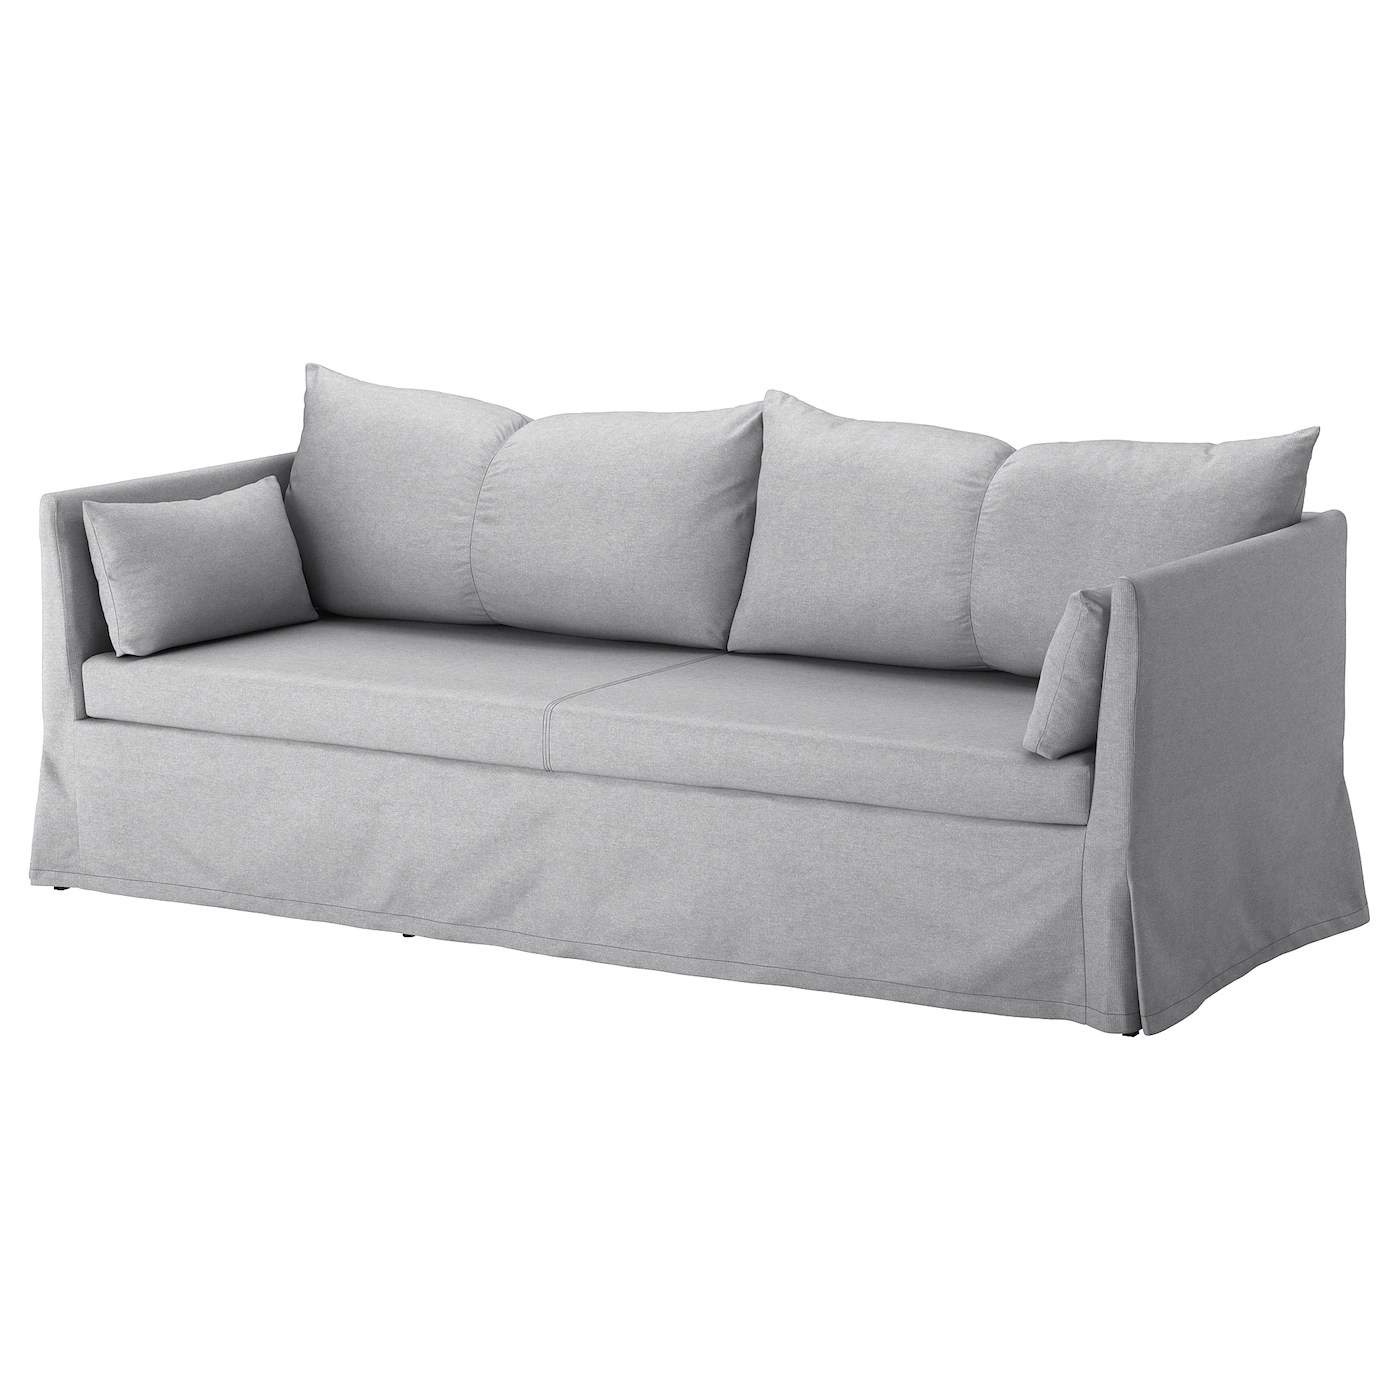 Bettsofa Chur Ikea Sofa Cheap Sofa